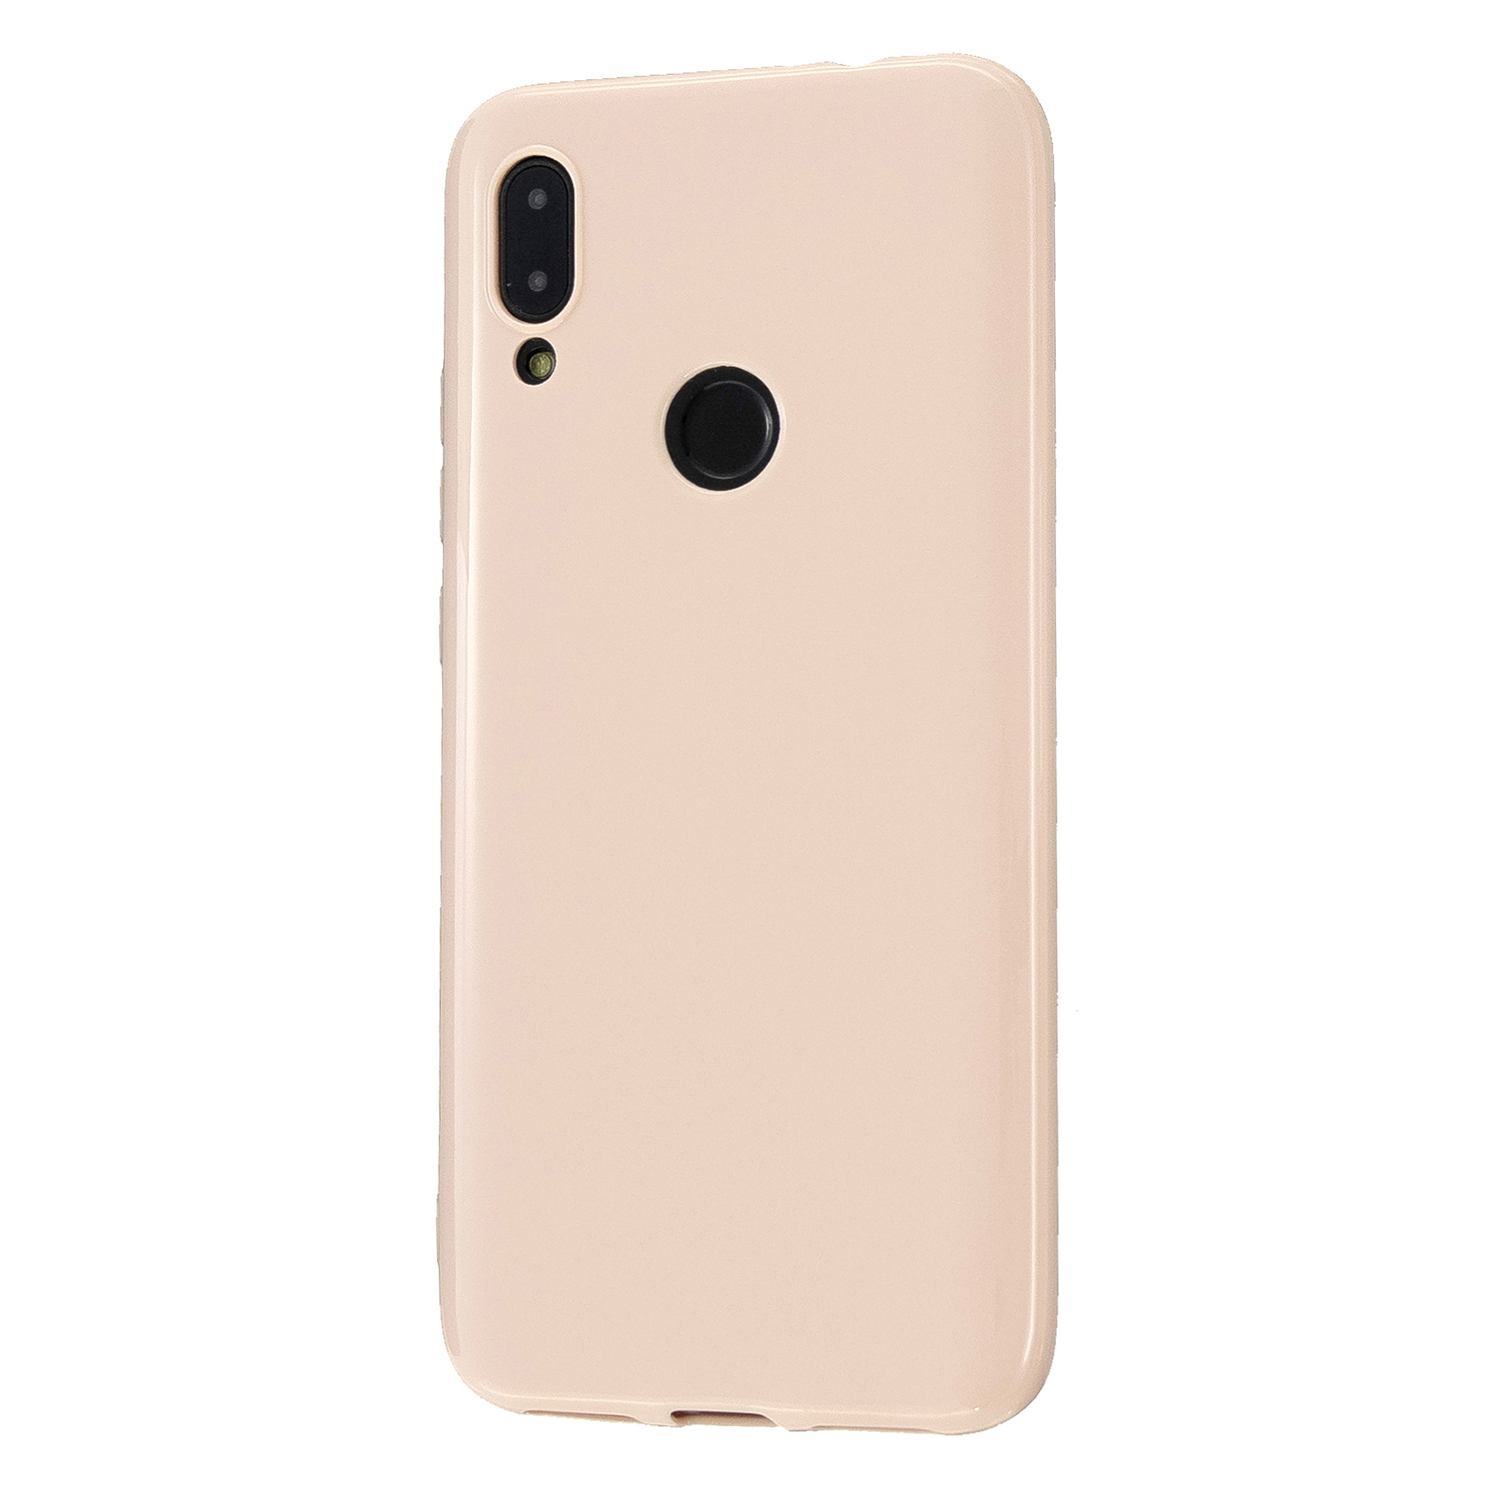 For Redmi 7/7A/Note 7/Note 7 Pro Cellphone Cover Overall Protection Soft TPU Anti-Slip Anti-Scratch Phone Case Sakura pink